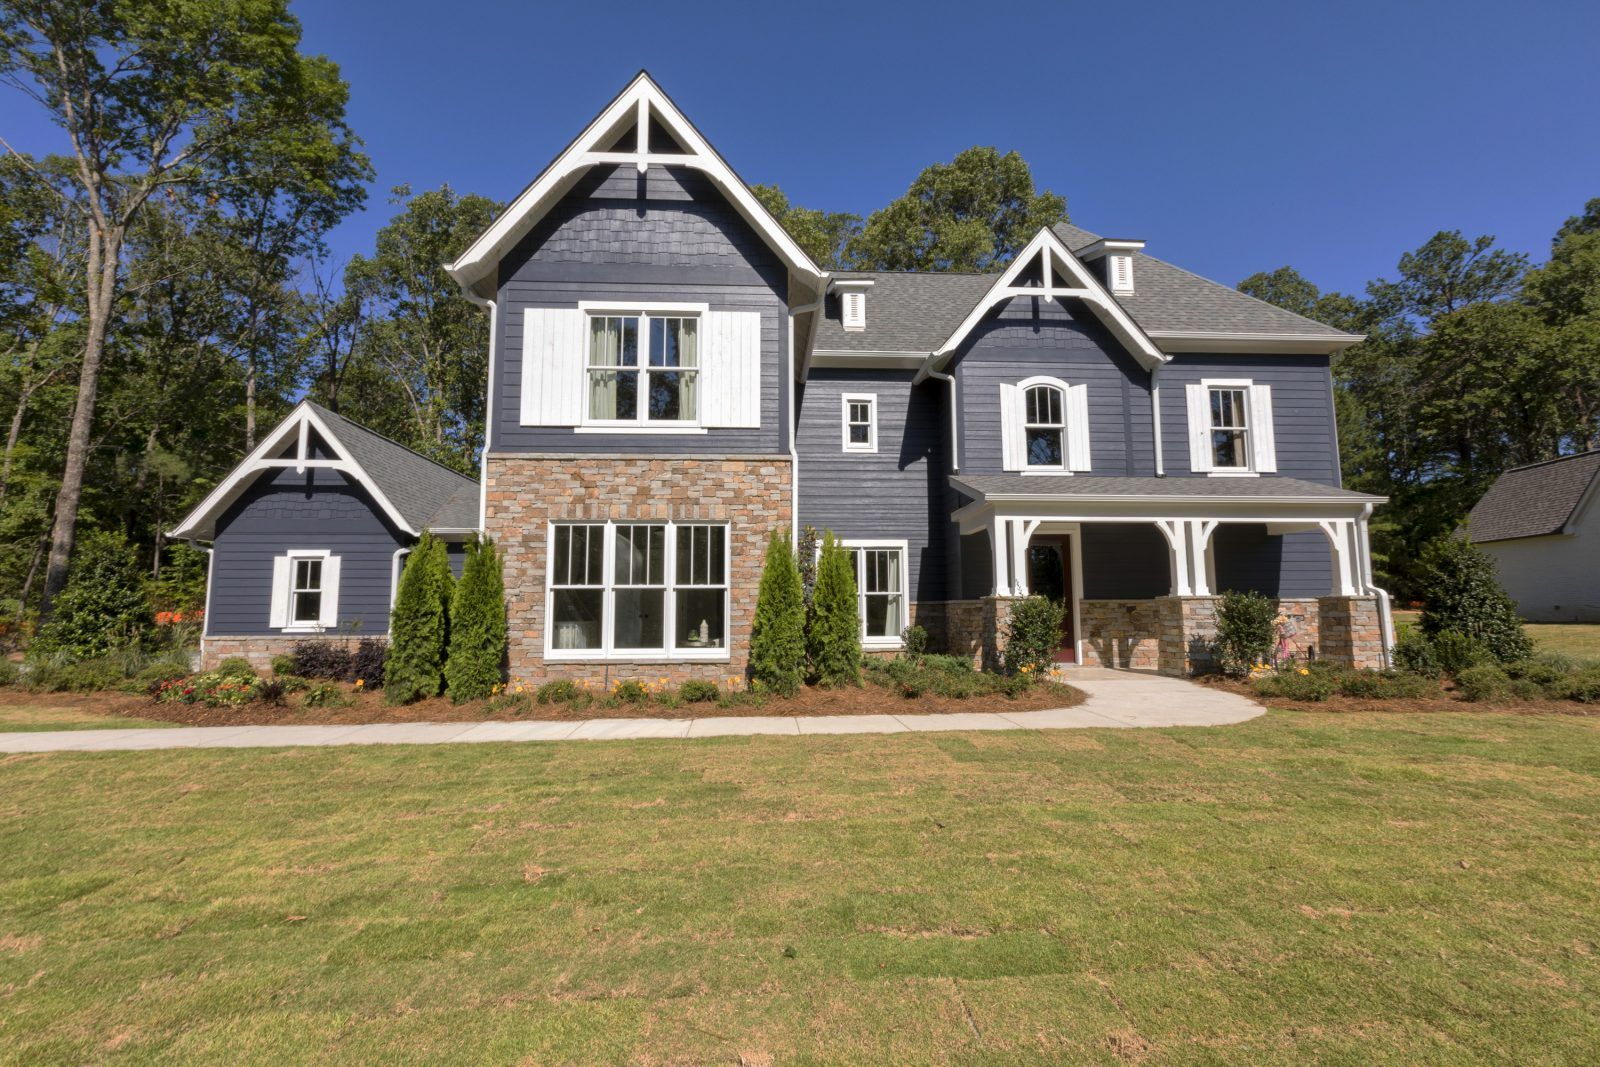 Unifamiliar por un Venta en Winthorpe B1 Basement- Homesite 7 2134 Rains Run Birmingham, Alabama 35242 United States